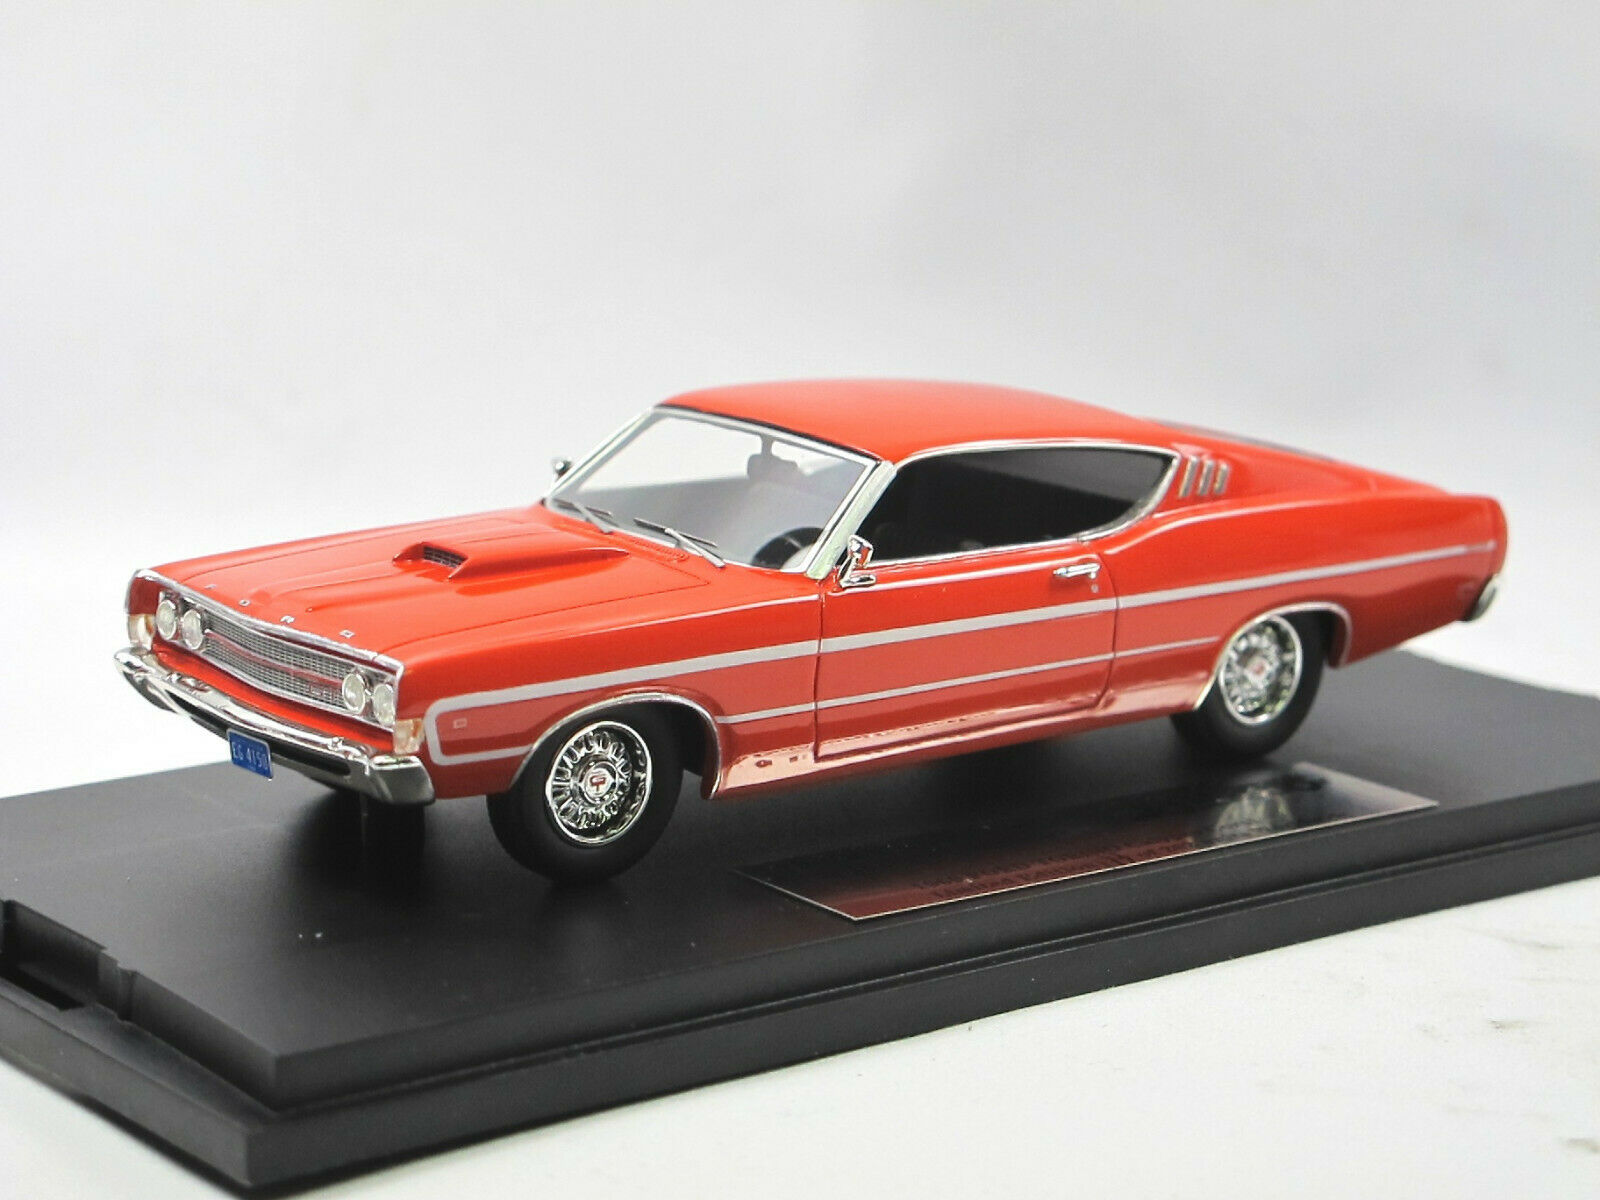 orVARG COLLECTION gc-009a - 1969 FORD TORINO-Calypso Coral - 1 43 Limited